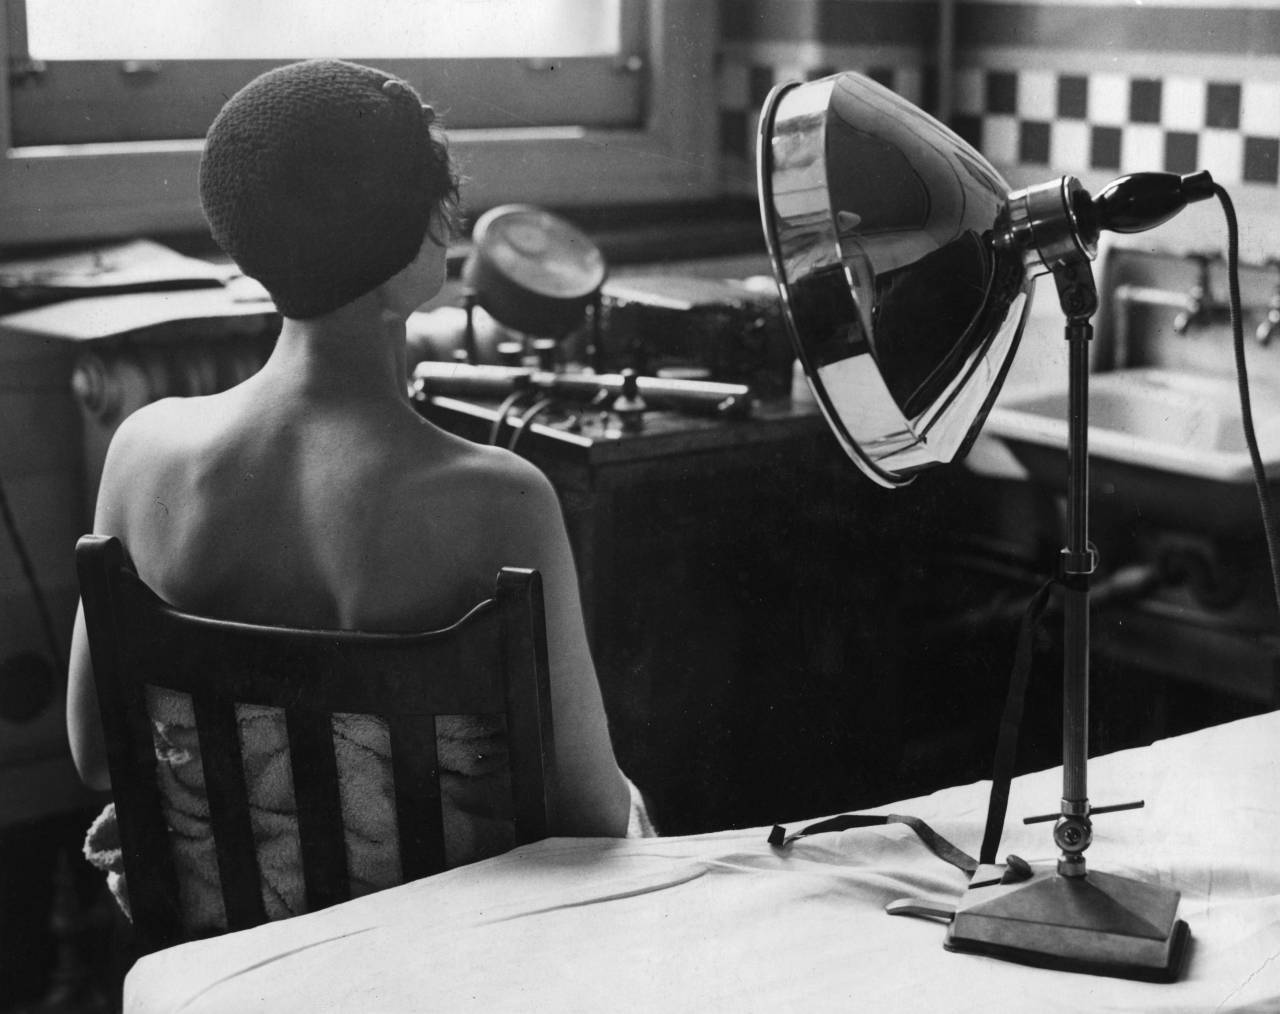 circa 1932:  Using an infra-red ray lamp to cure skin complaints.  (Photo by Fox Photos/Getty Images)